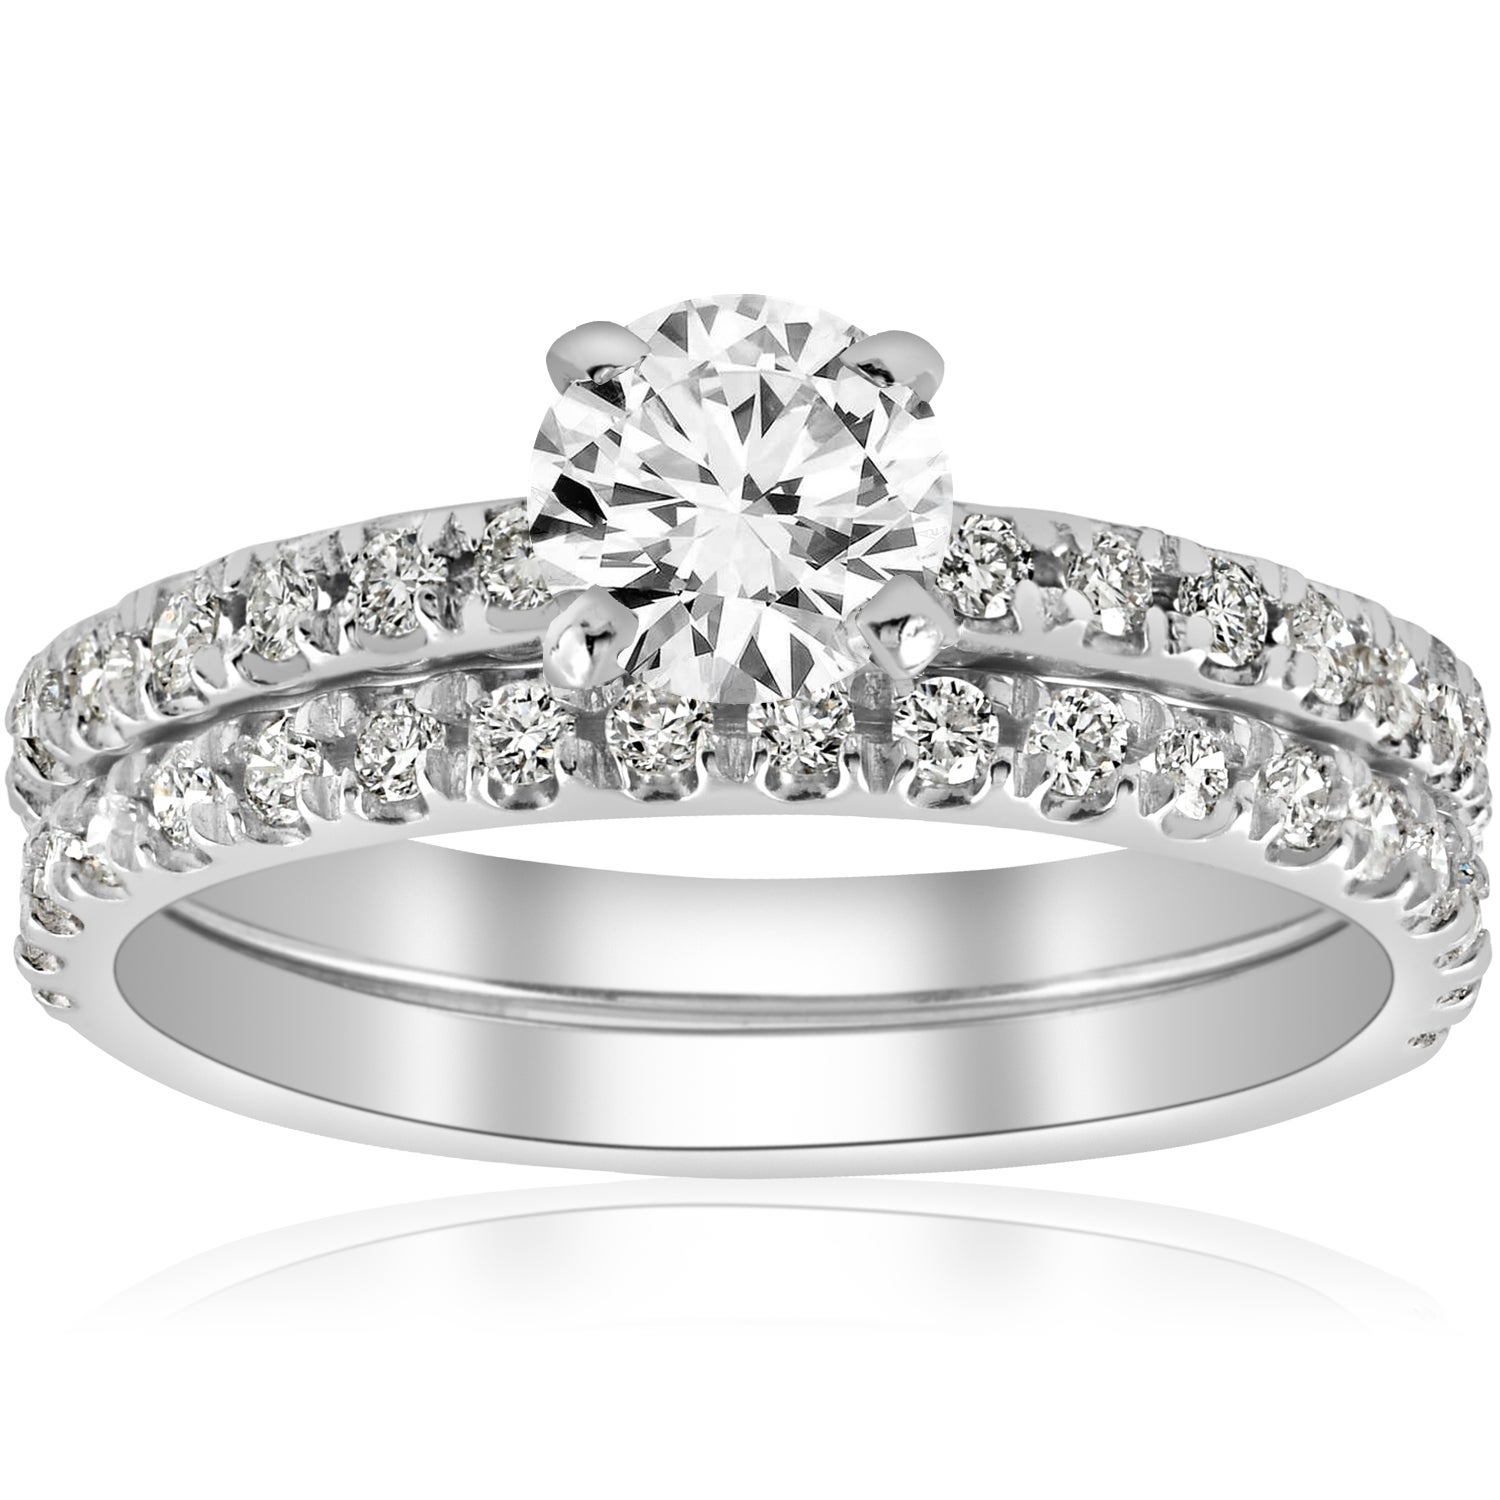 14k White Gold 1 1/4 Ct Tdw Diamond Engagement Ring Wedding Set French Pave Single Row (i J,i2 I3) Pertaining To 2019 Diamond Three Row Tiered Anniversary Bands In White Gold (View 15 of 25)